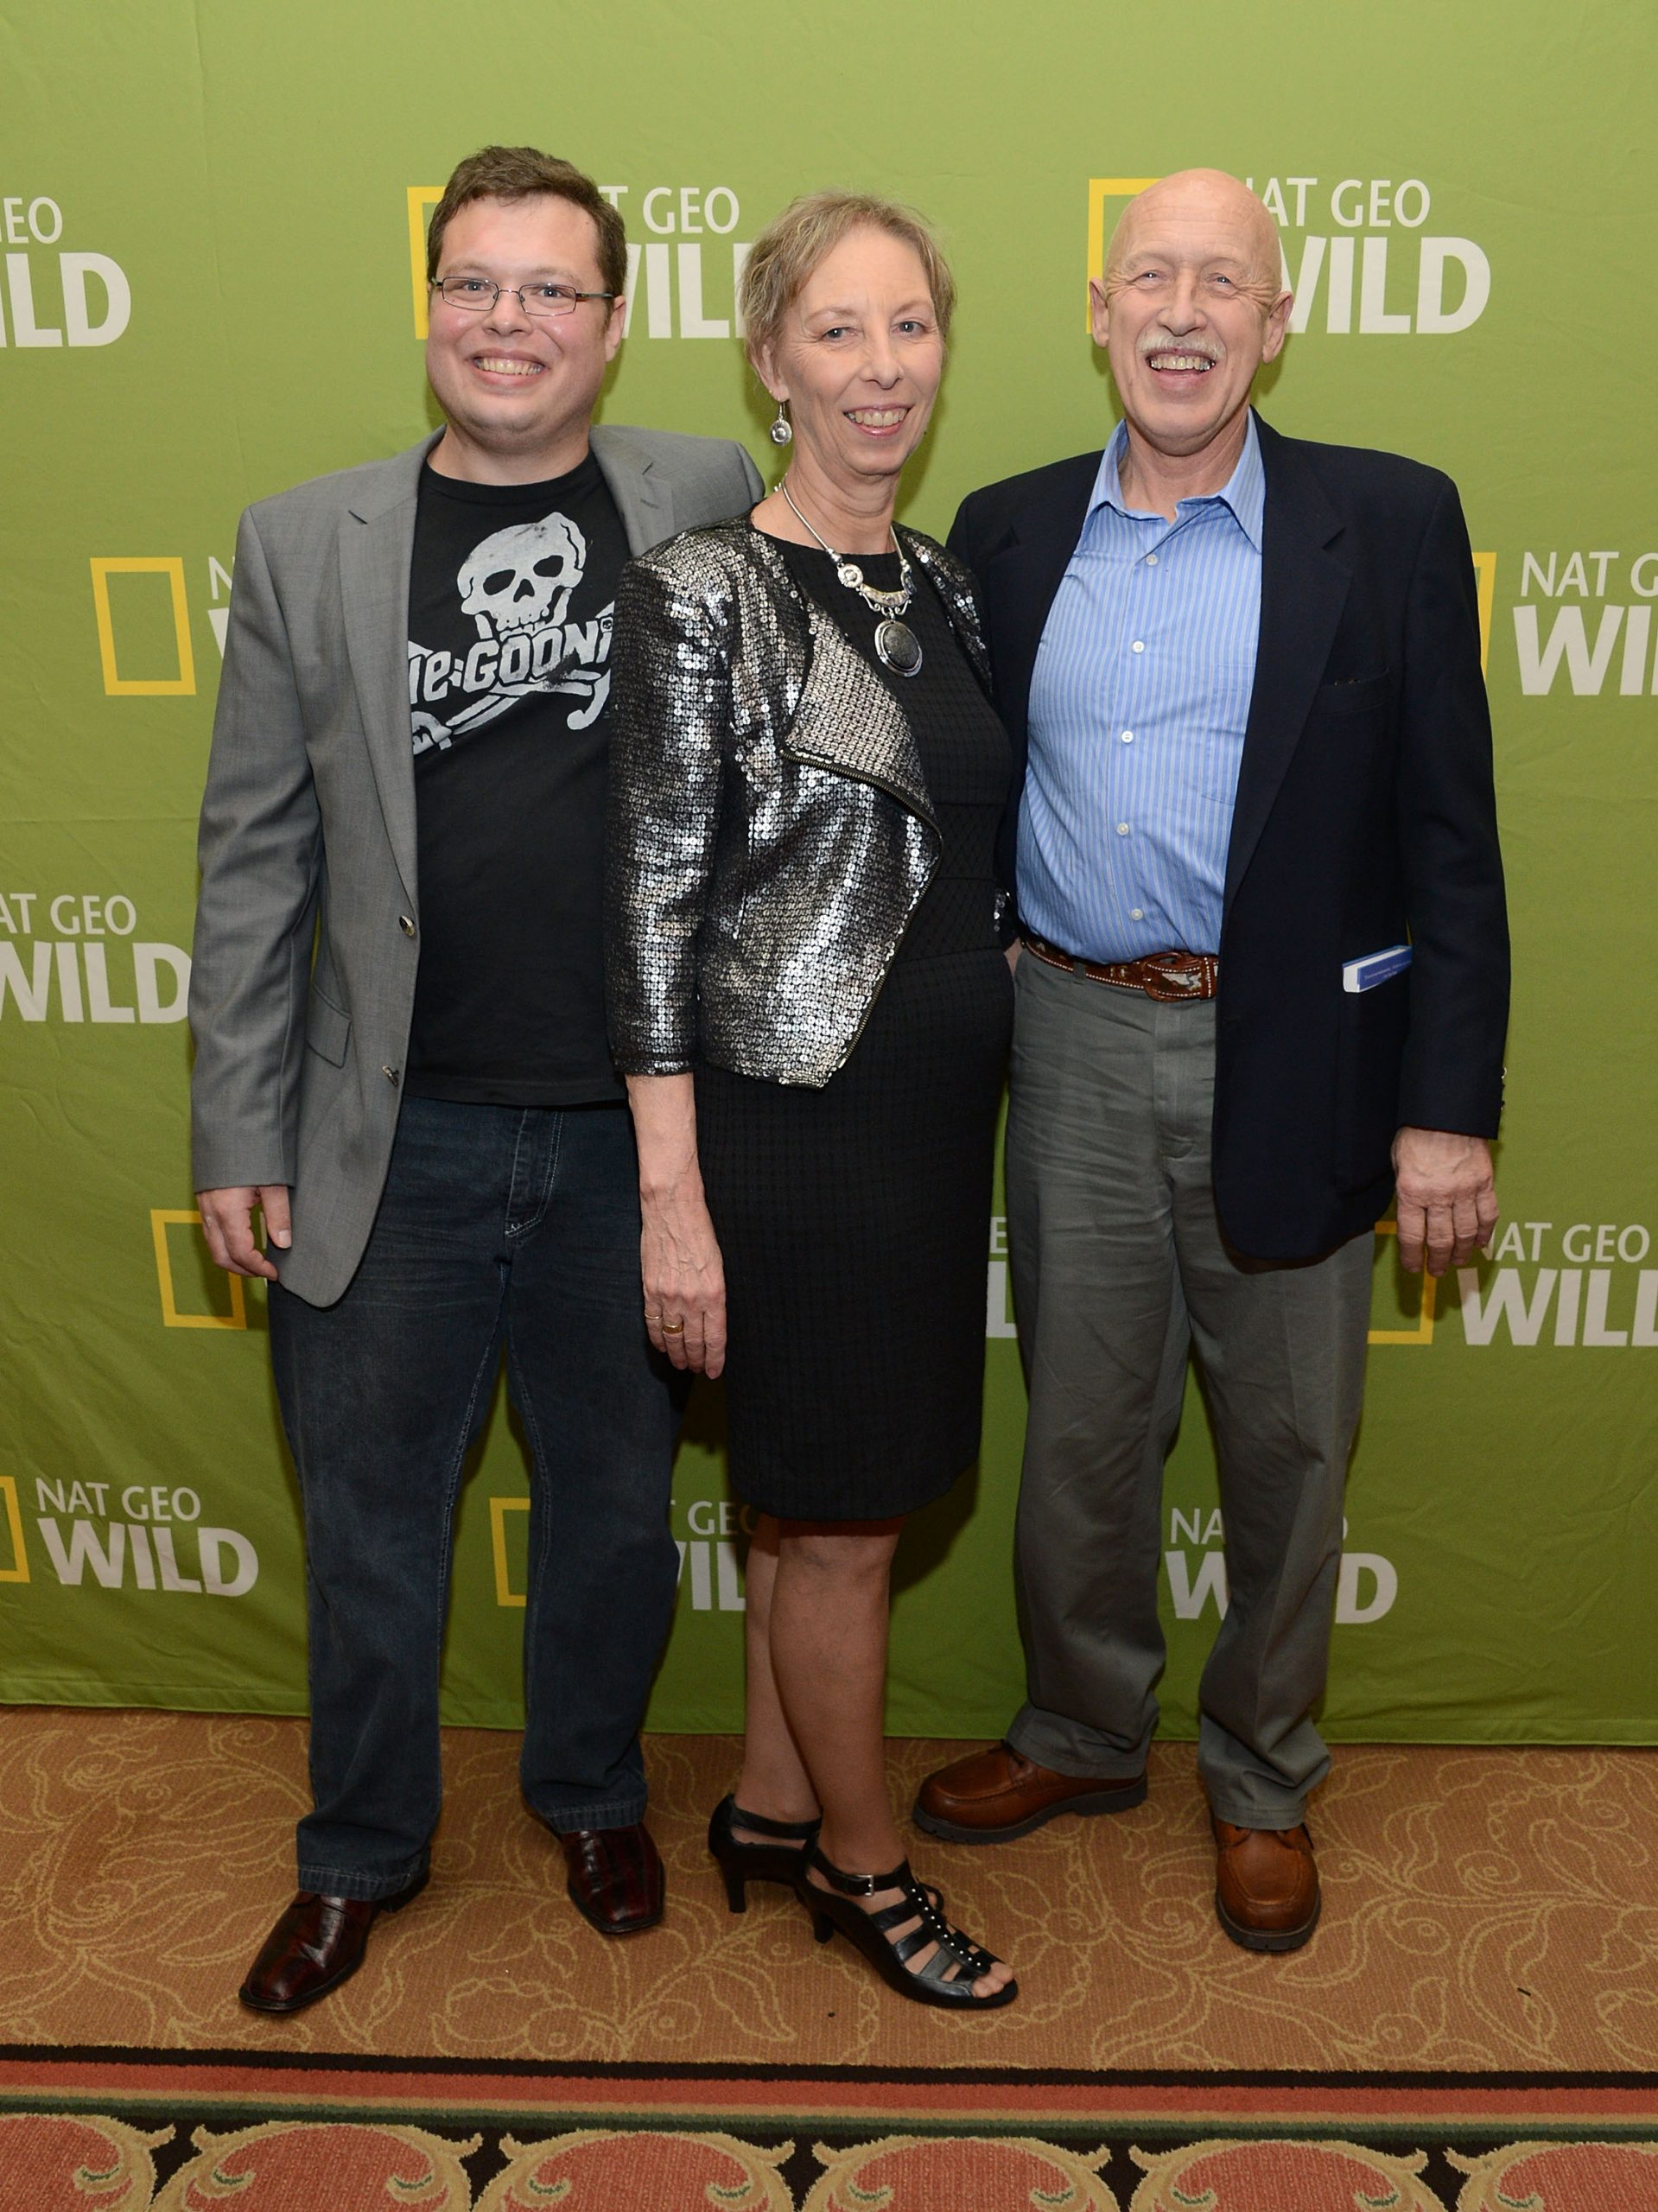 The Pol family: Charles Pol, Diane Pol, and Dr. Jan Pol of 'The Incredible Dr. Pol'